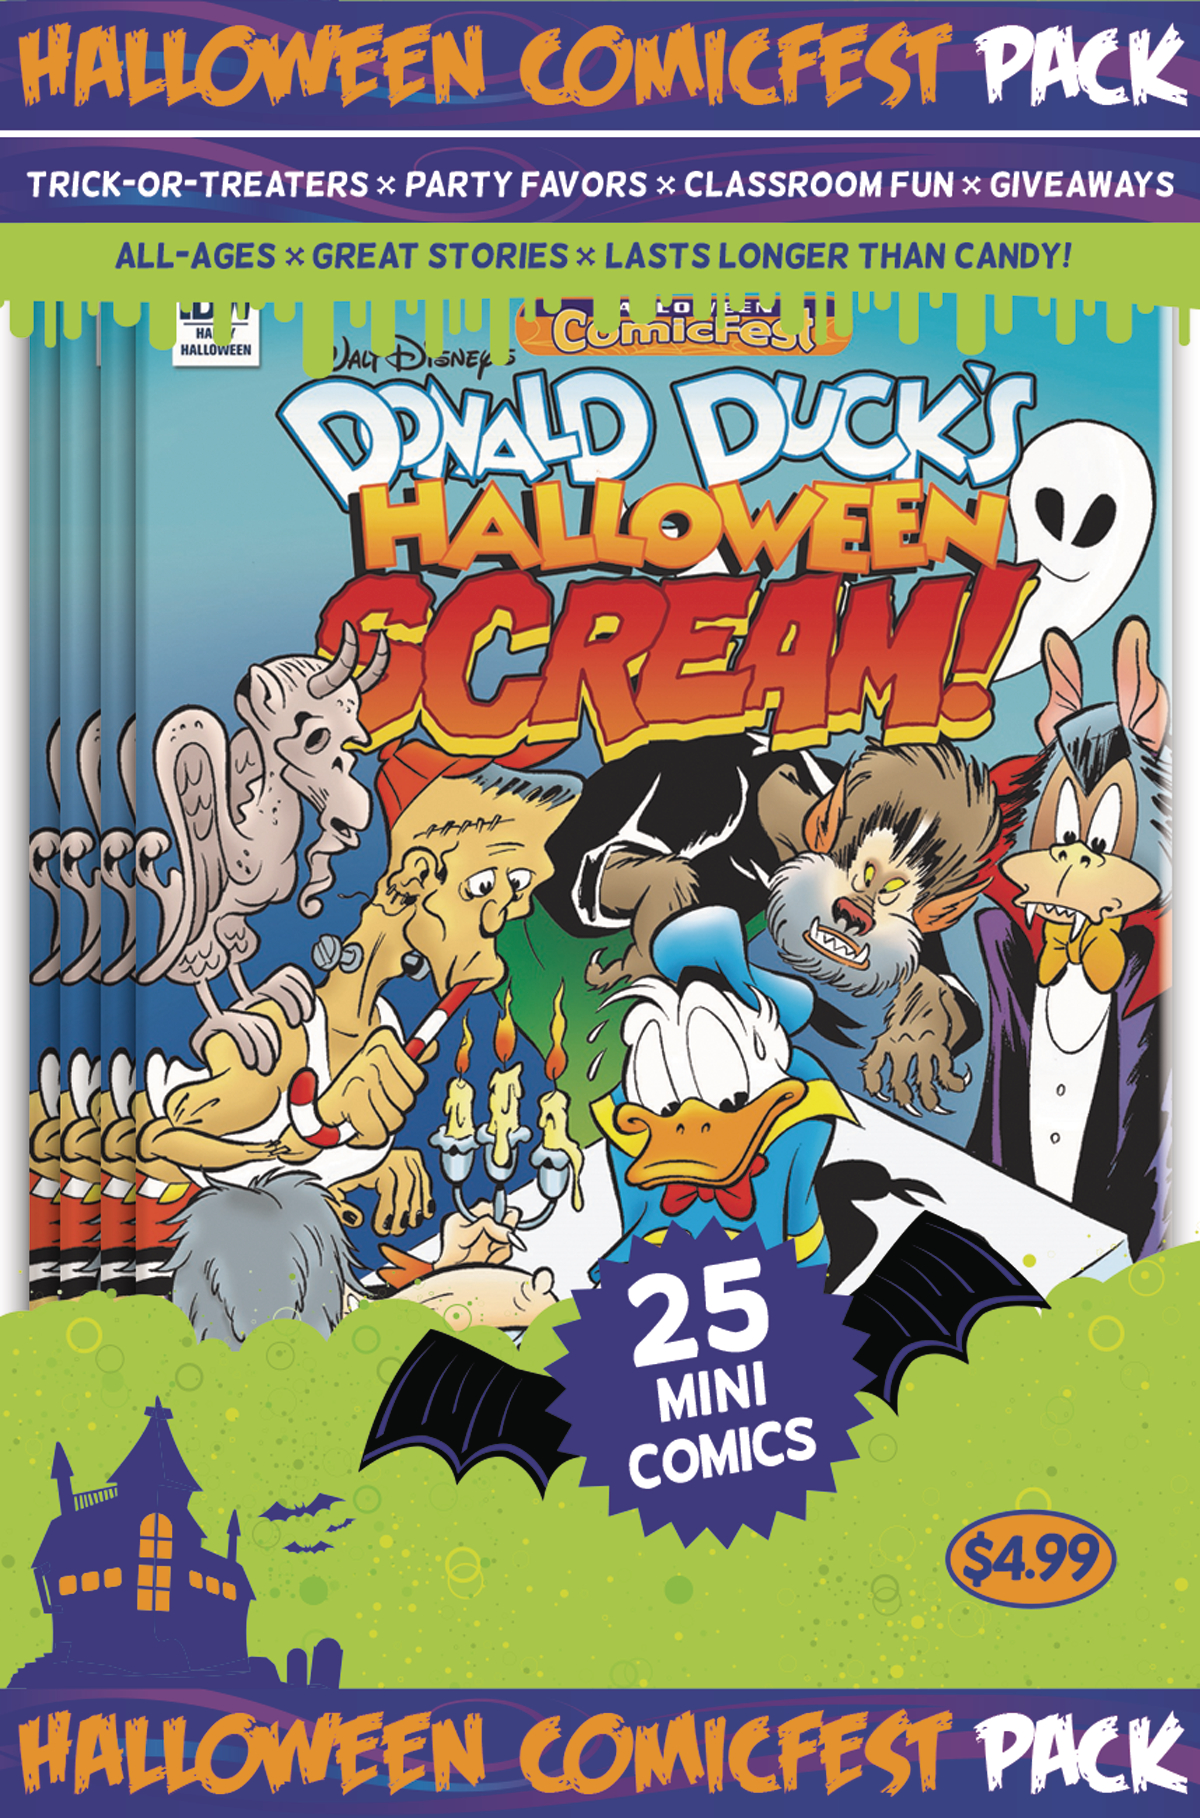 HCF 2017 DONALD DUCK HALLOWEEN SCREAM #2 MINI COMIC POLYPACK